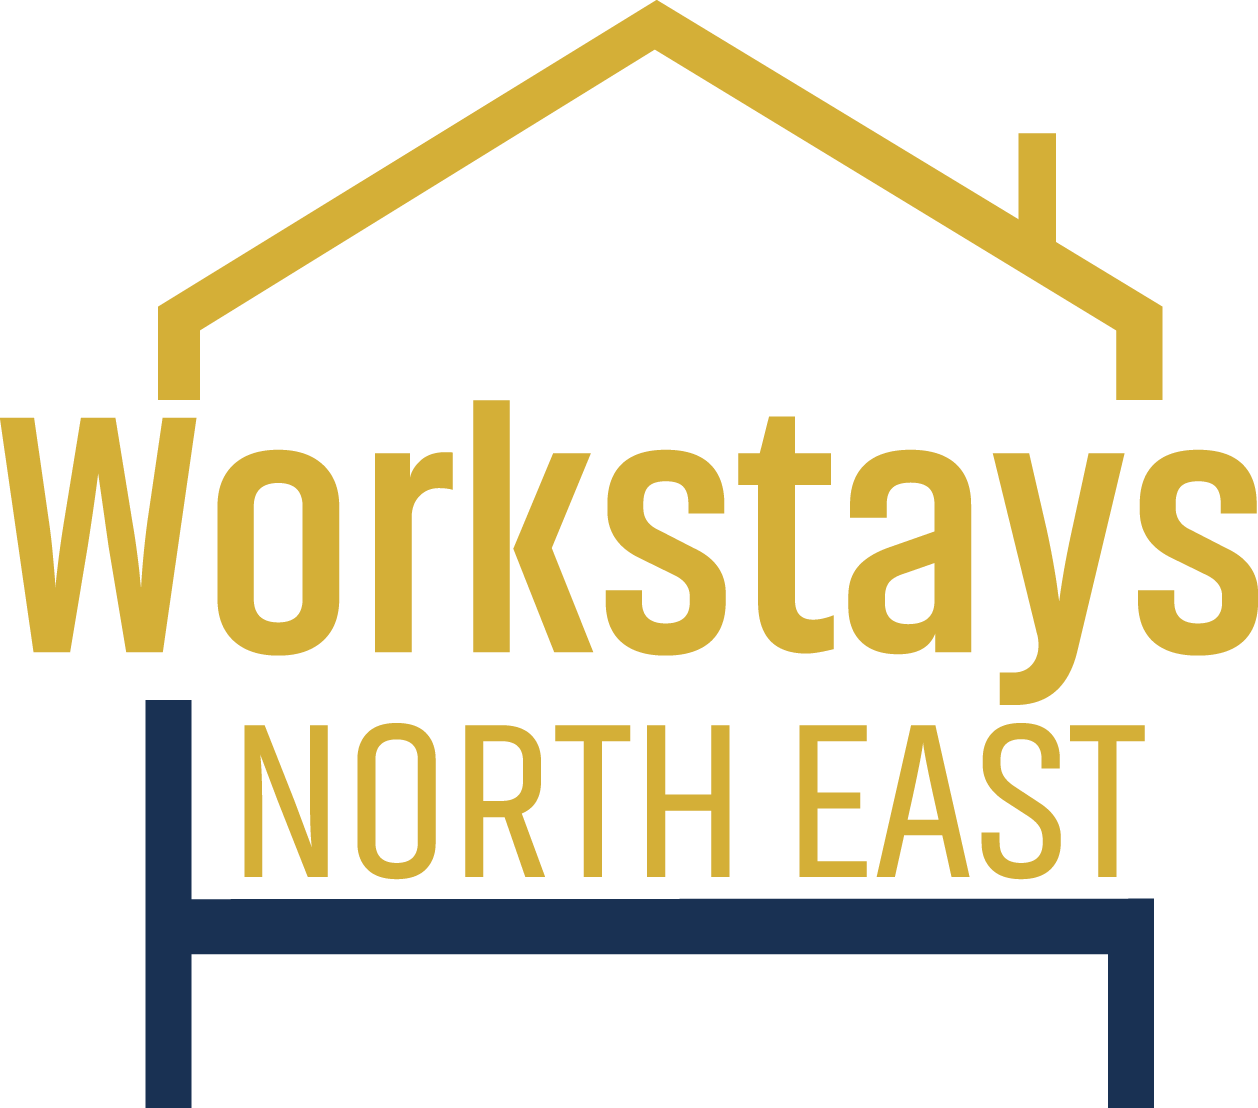 Workstays